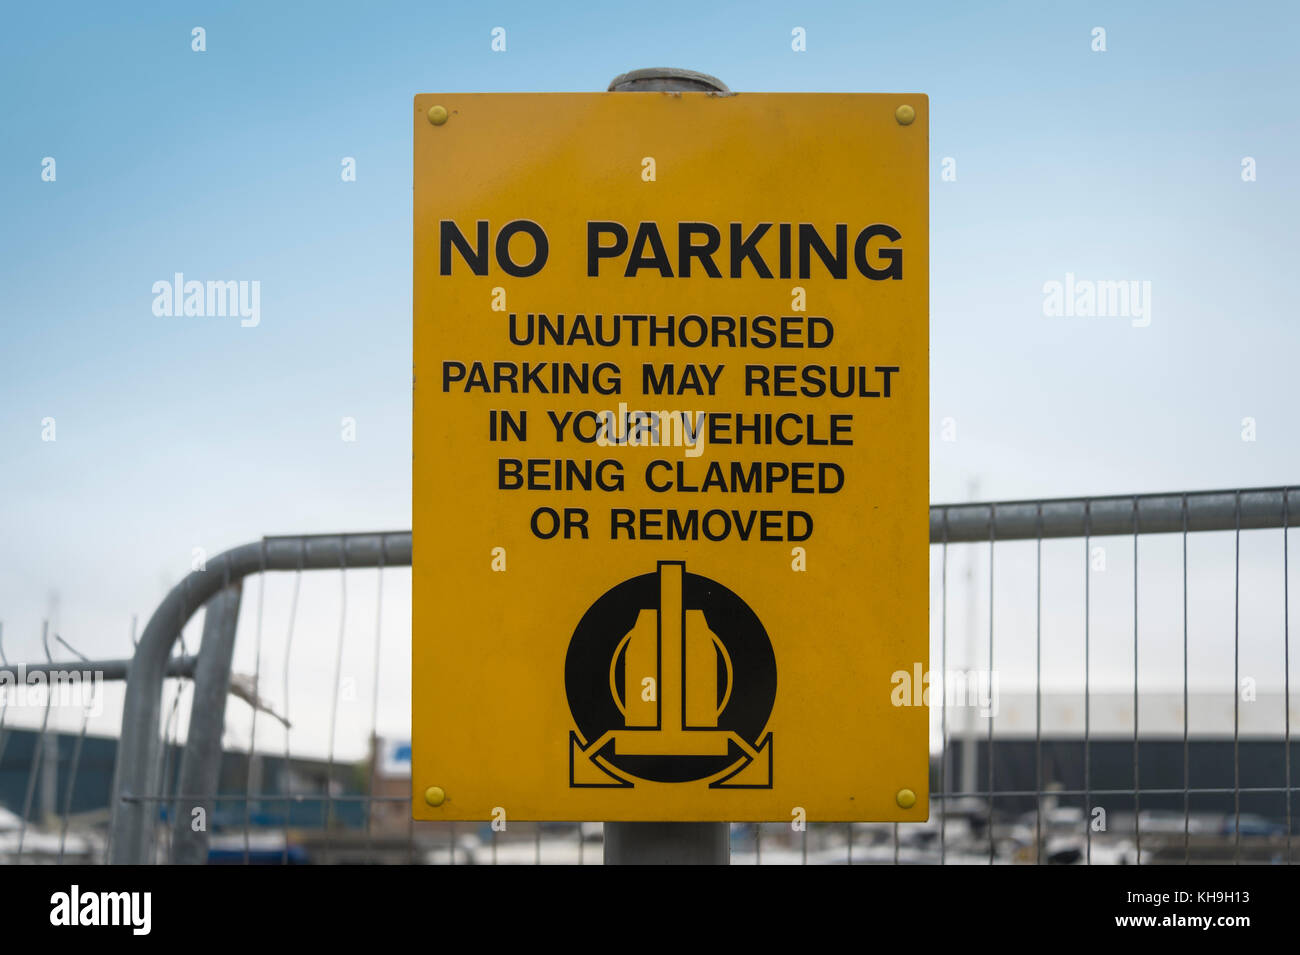 No Parking sign, unauthorised parking may result in your vehicle being clamped or removed. - Stock Image